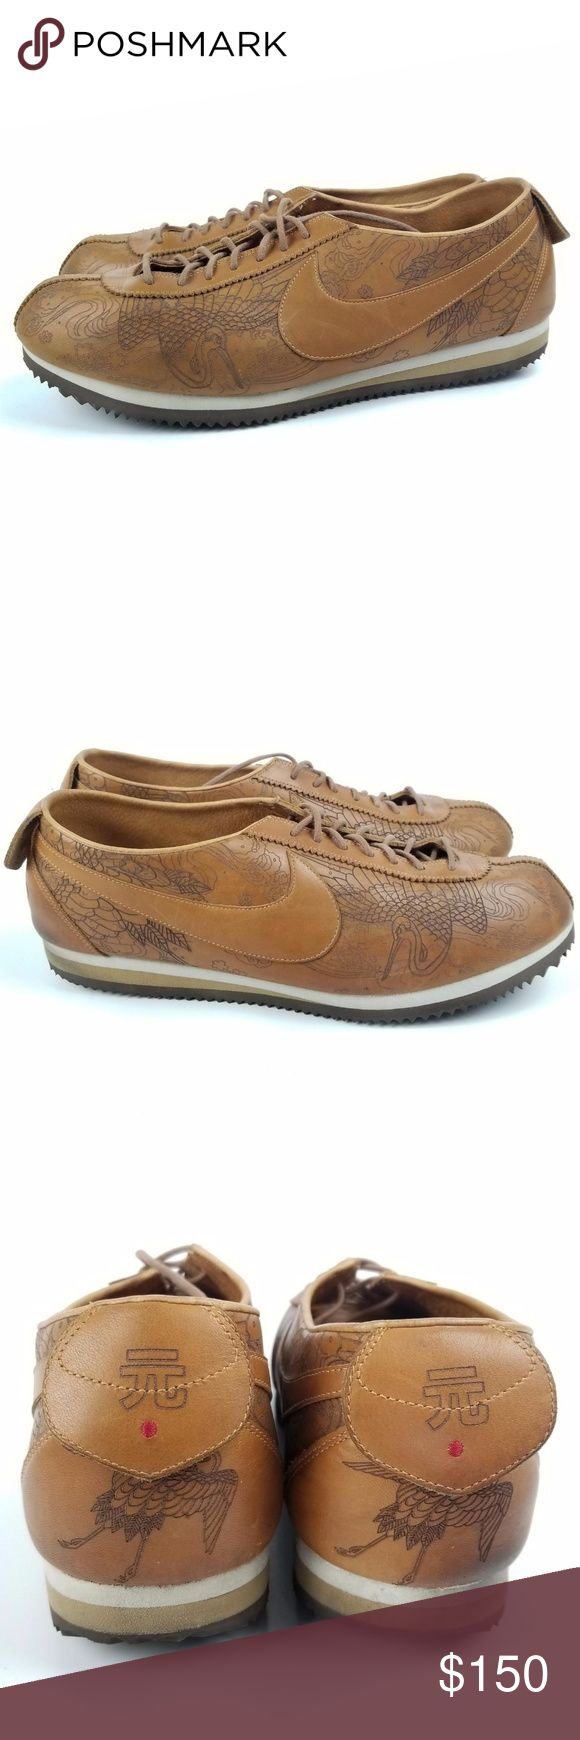 """Nike Original Cortez Premium 309174-221-00 Sz 12 Tattoo  Brown  Laser Cut  Rare find! 2004 laser cut Cortez Very little wear. Soles are near perfect.  Not sure it will fit? Take bottom measurements of a similar item that fits and compare with the measurements below.          Measurements: (Approximate in inches)    Bottom length: 12"""" Bottom Width: 4""""  8465 Nike Shoes Sneakers"""